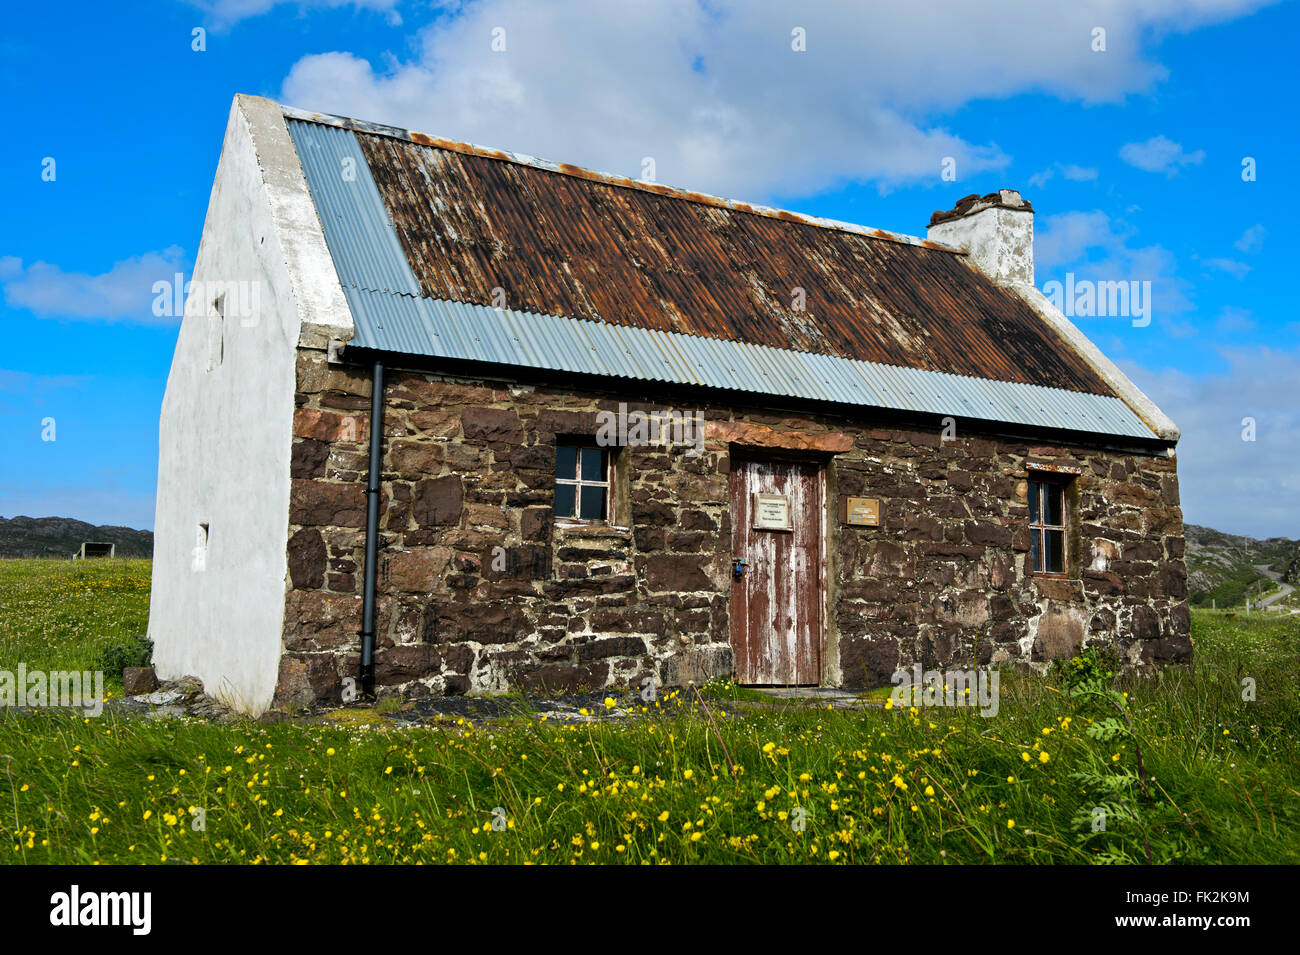 Clachtoll Bothy, Saumon, Clachtoll Assynt, Ecosse, Royaume-Uni Photo Stock